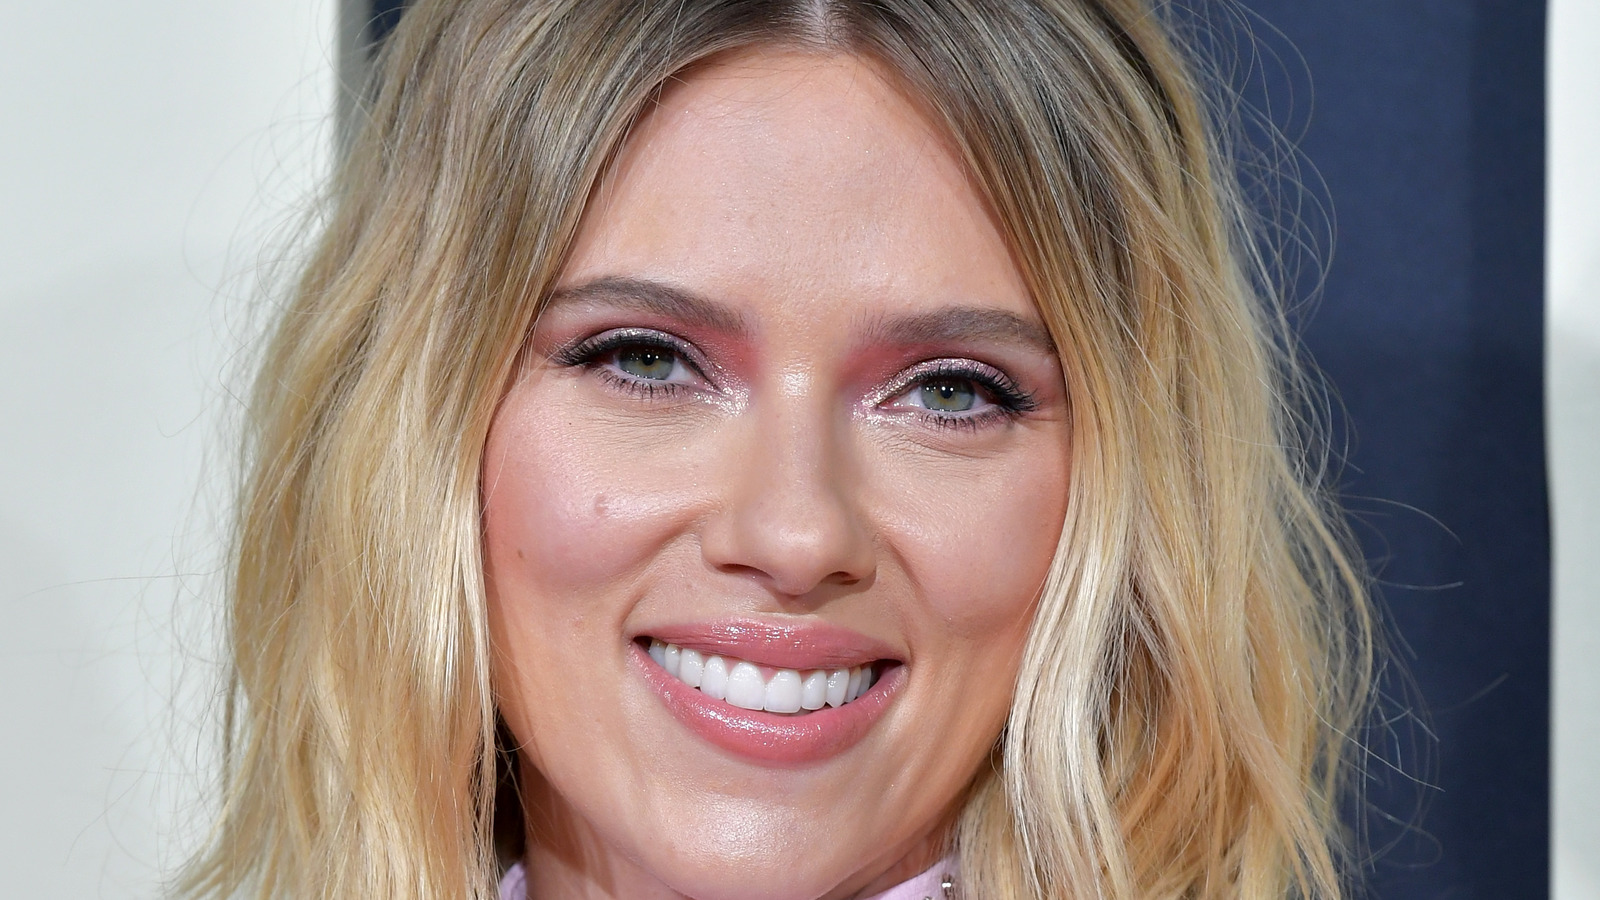 The strange hobby you didn't know Scarlett Johansson had